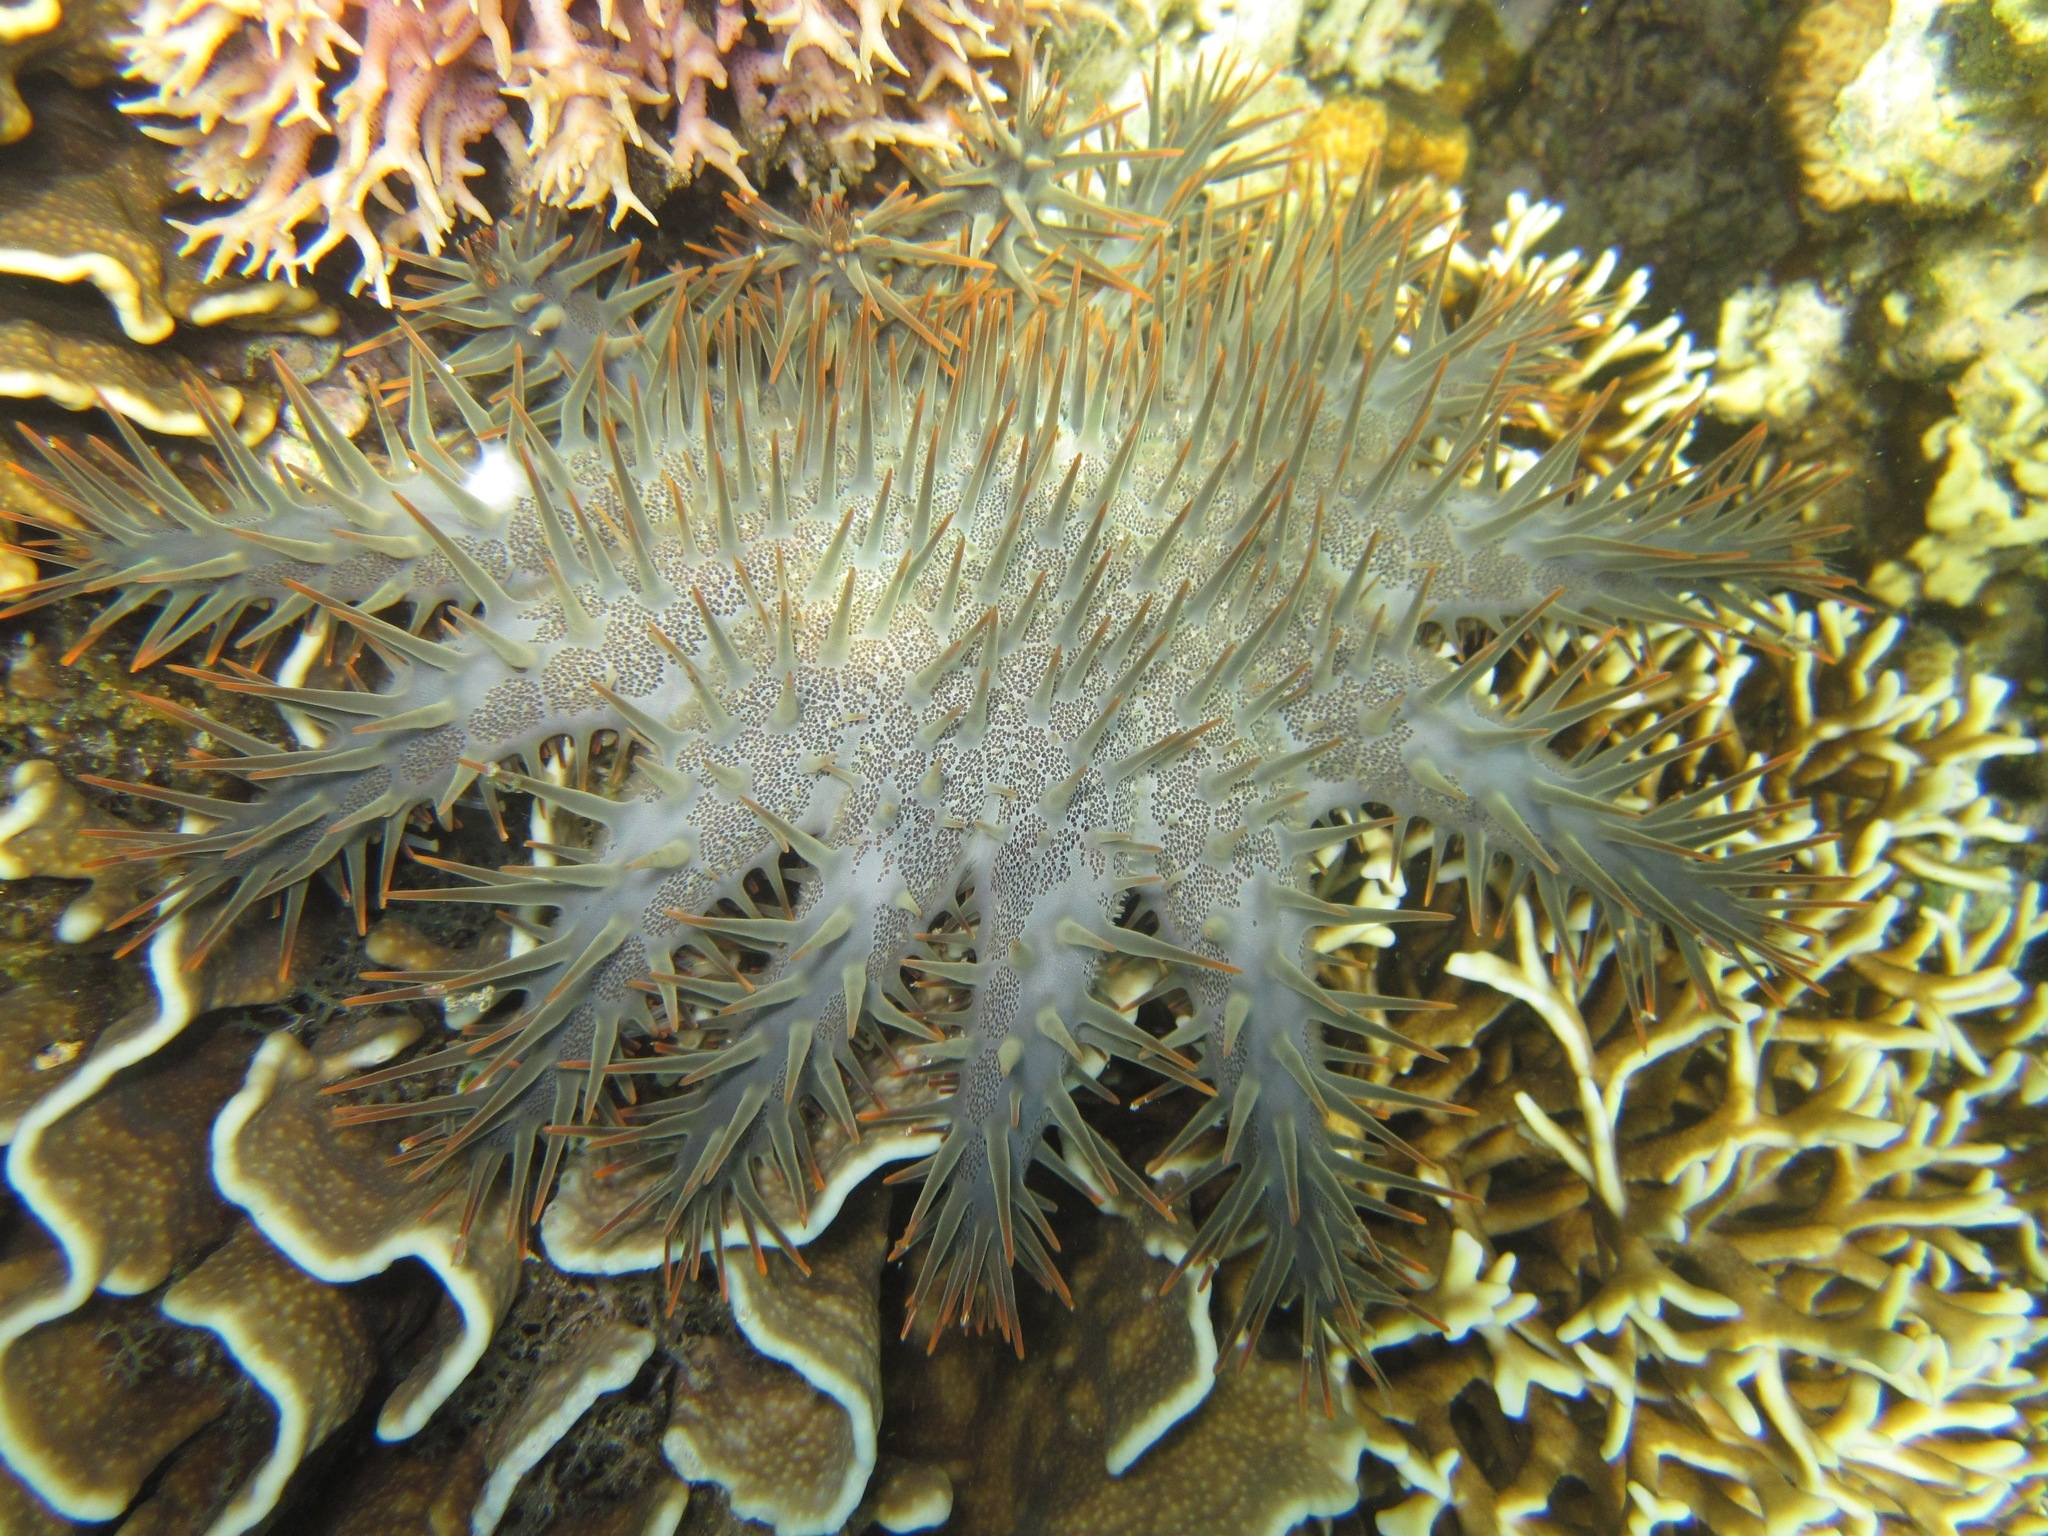 Image of Crown of thorns starfish